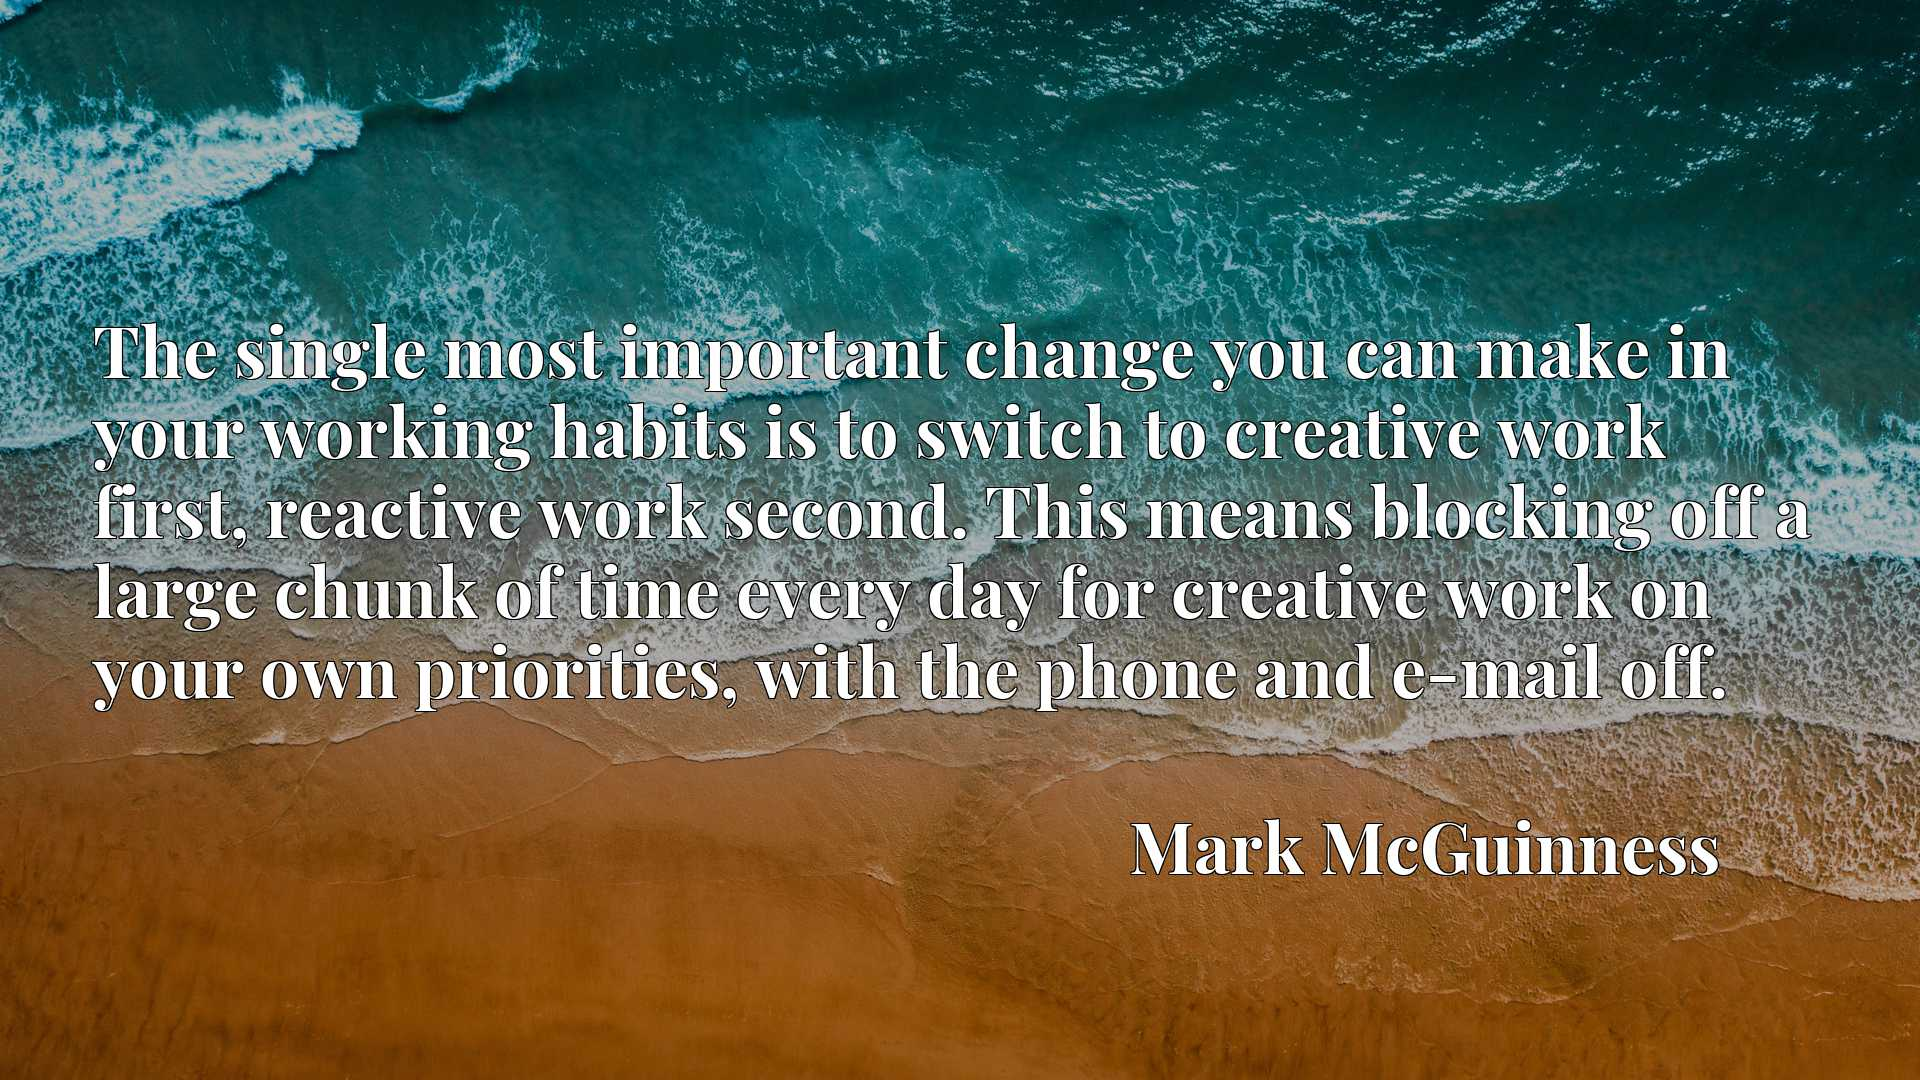 The single most important change you can make in your working habits is to switch to creative work first, reactive work second. This means blocking off a large chunk of time every day for creative work on your own priorities, with the phone and e-mail off.